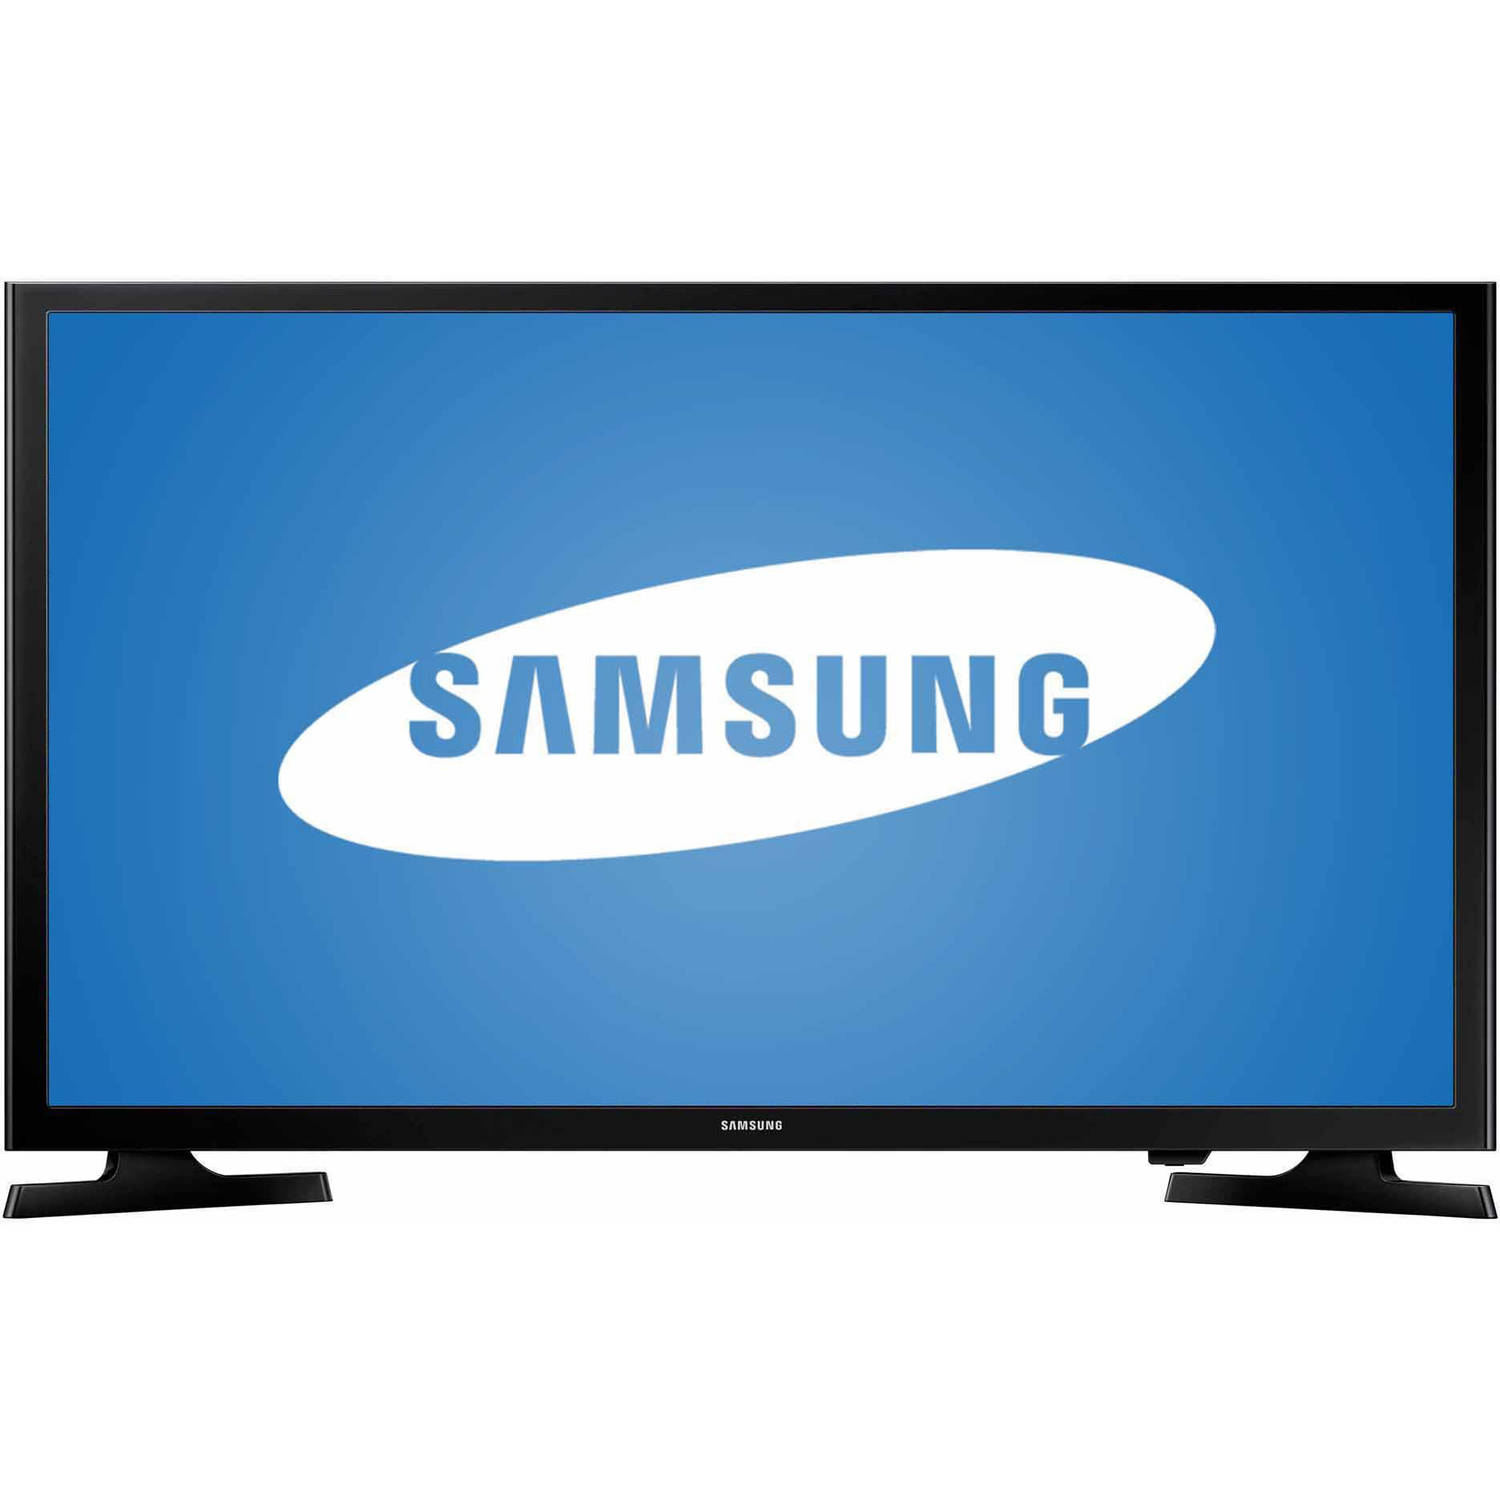 "Refurbished Samsung UN32J400 32"" 720p 60Hz LED HDTV"